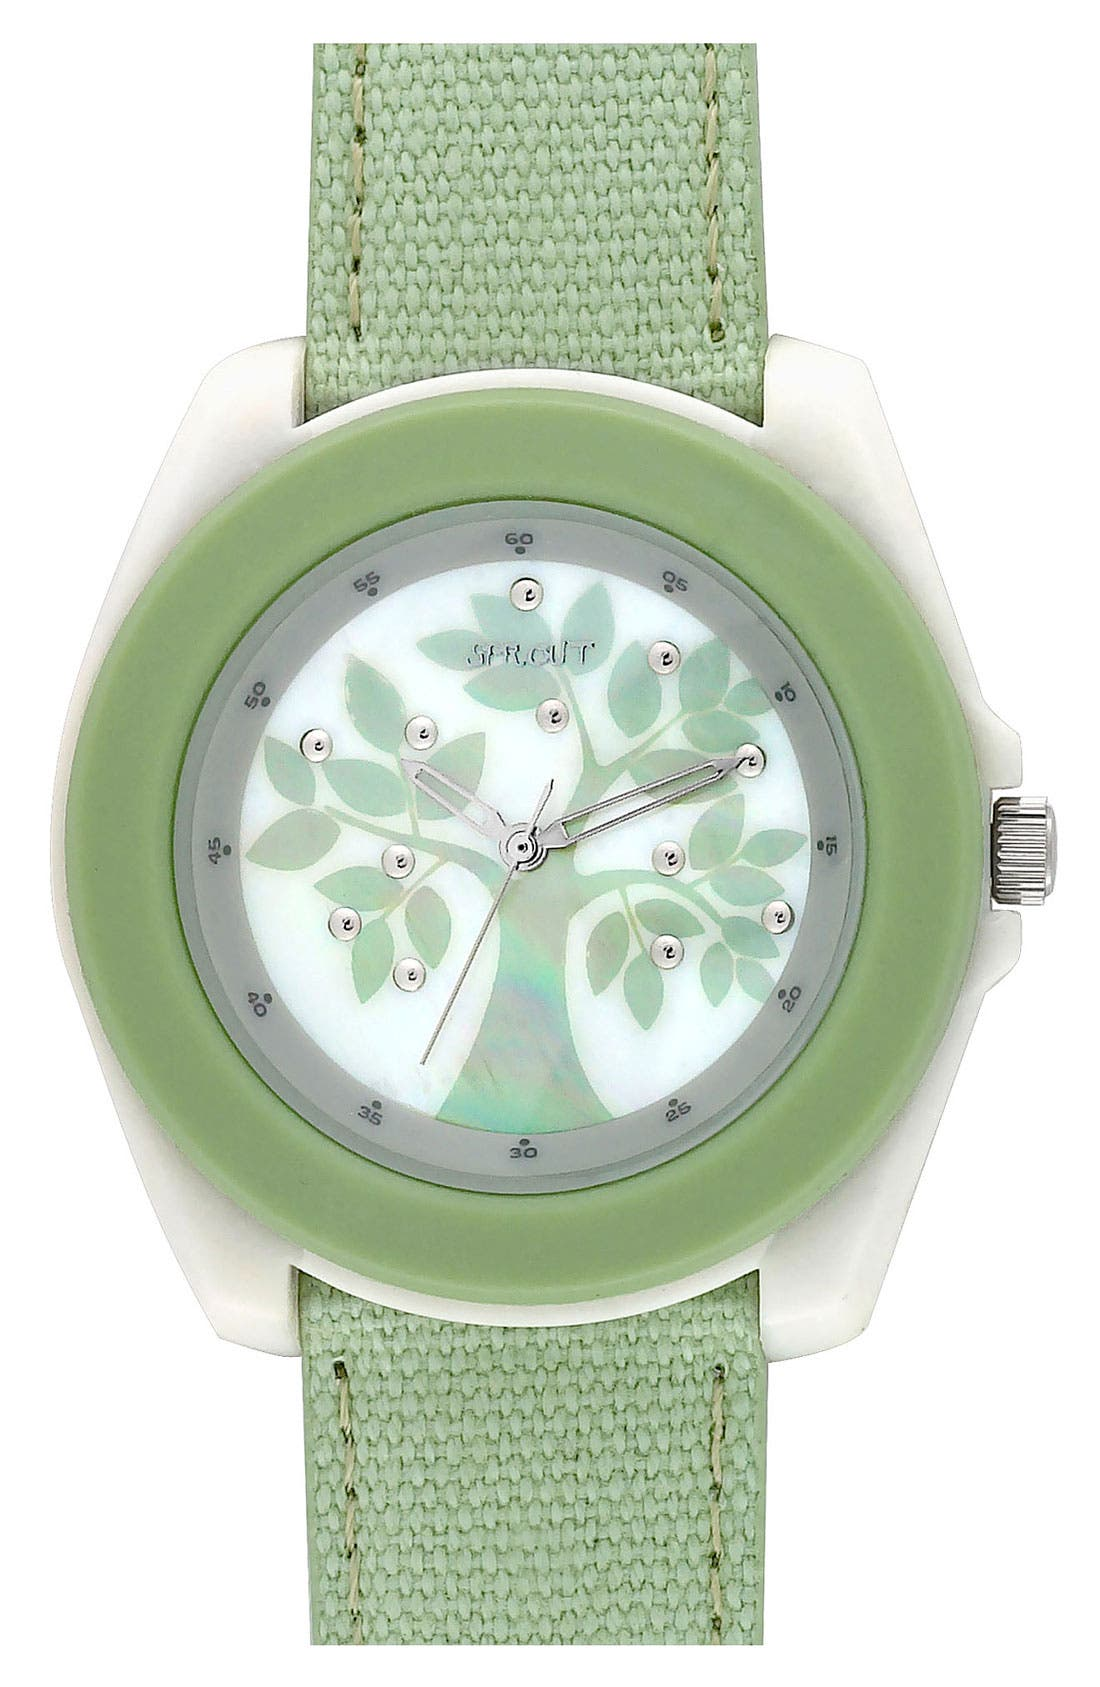 Main Image - SPROUT™ Watches Print Dial Cotton Strap Watch, 44mm